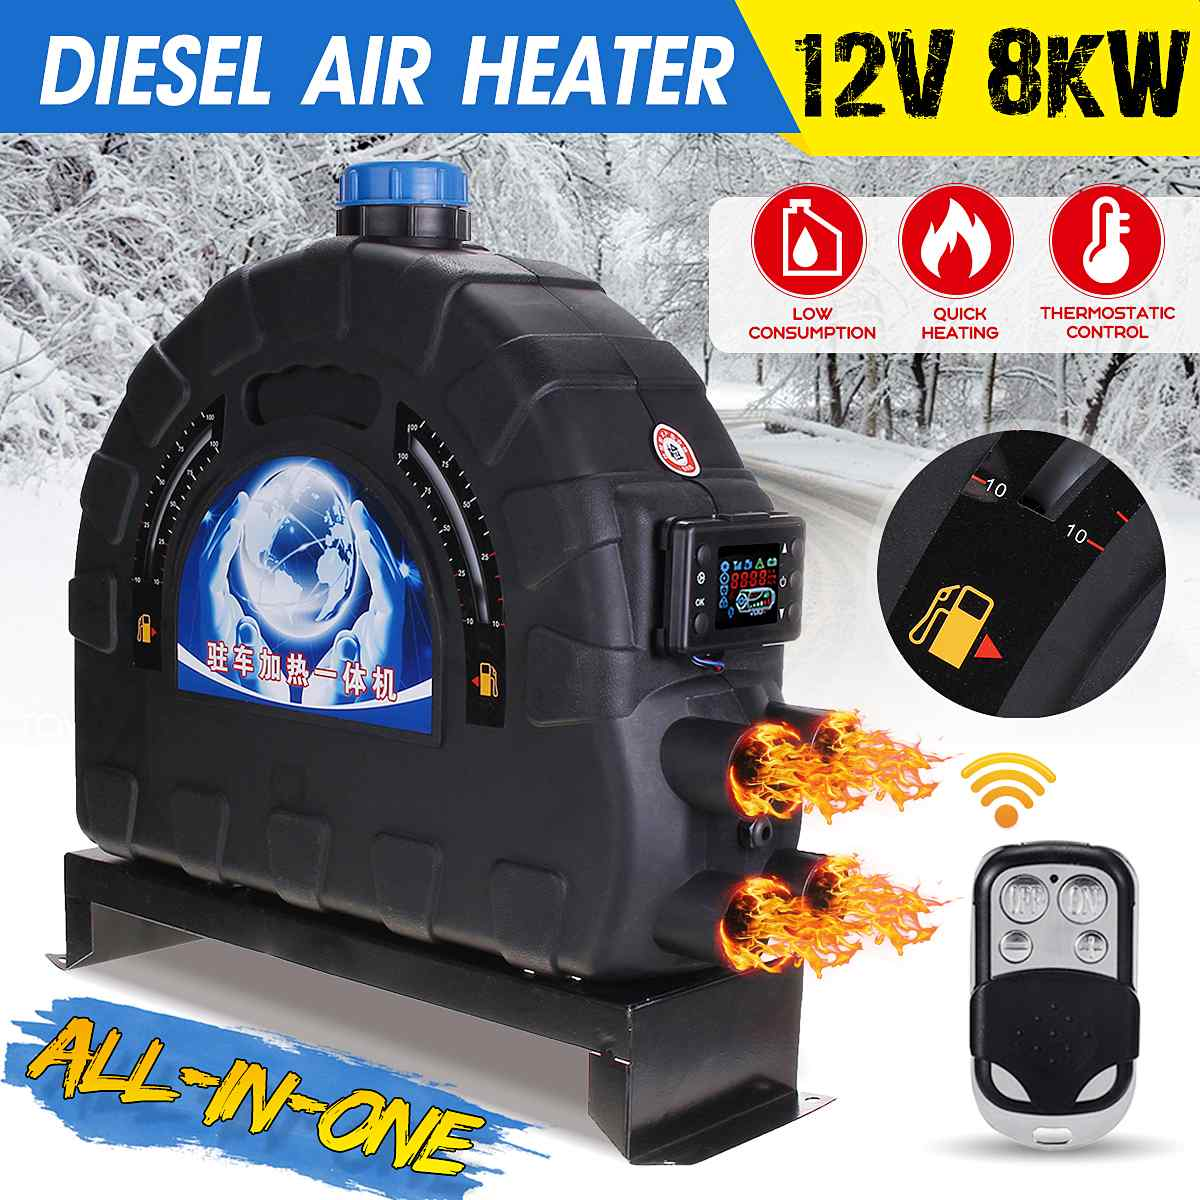 12V 8KW Car Heater Diesel Air Parking Heater LCD Monitor Rmote Control + Silencer for Trucks Bus Trailer Heater New Arrival 2019|Heating & Fans| |  - title=